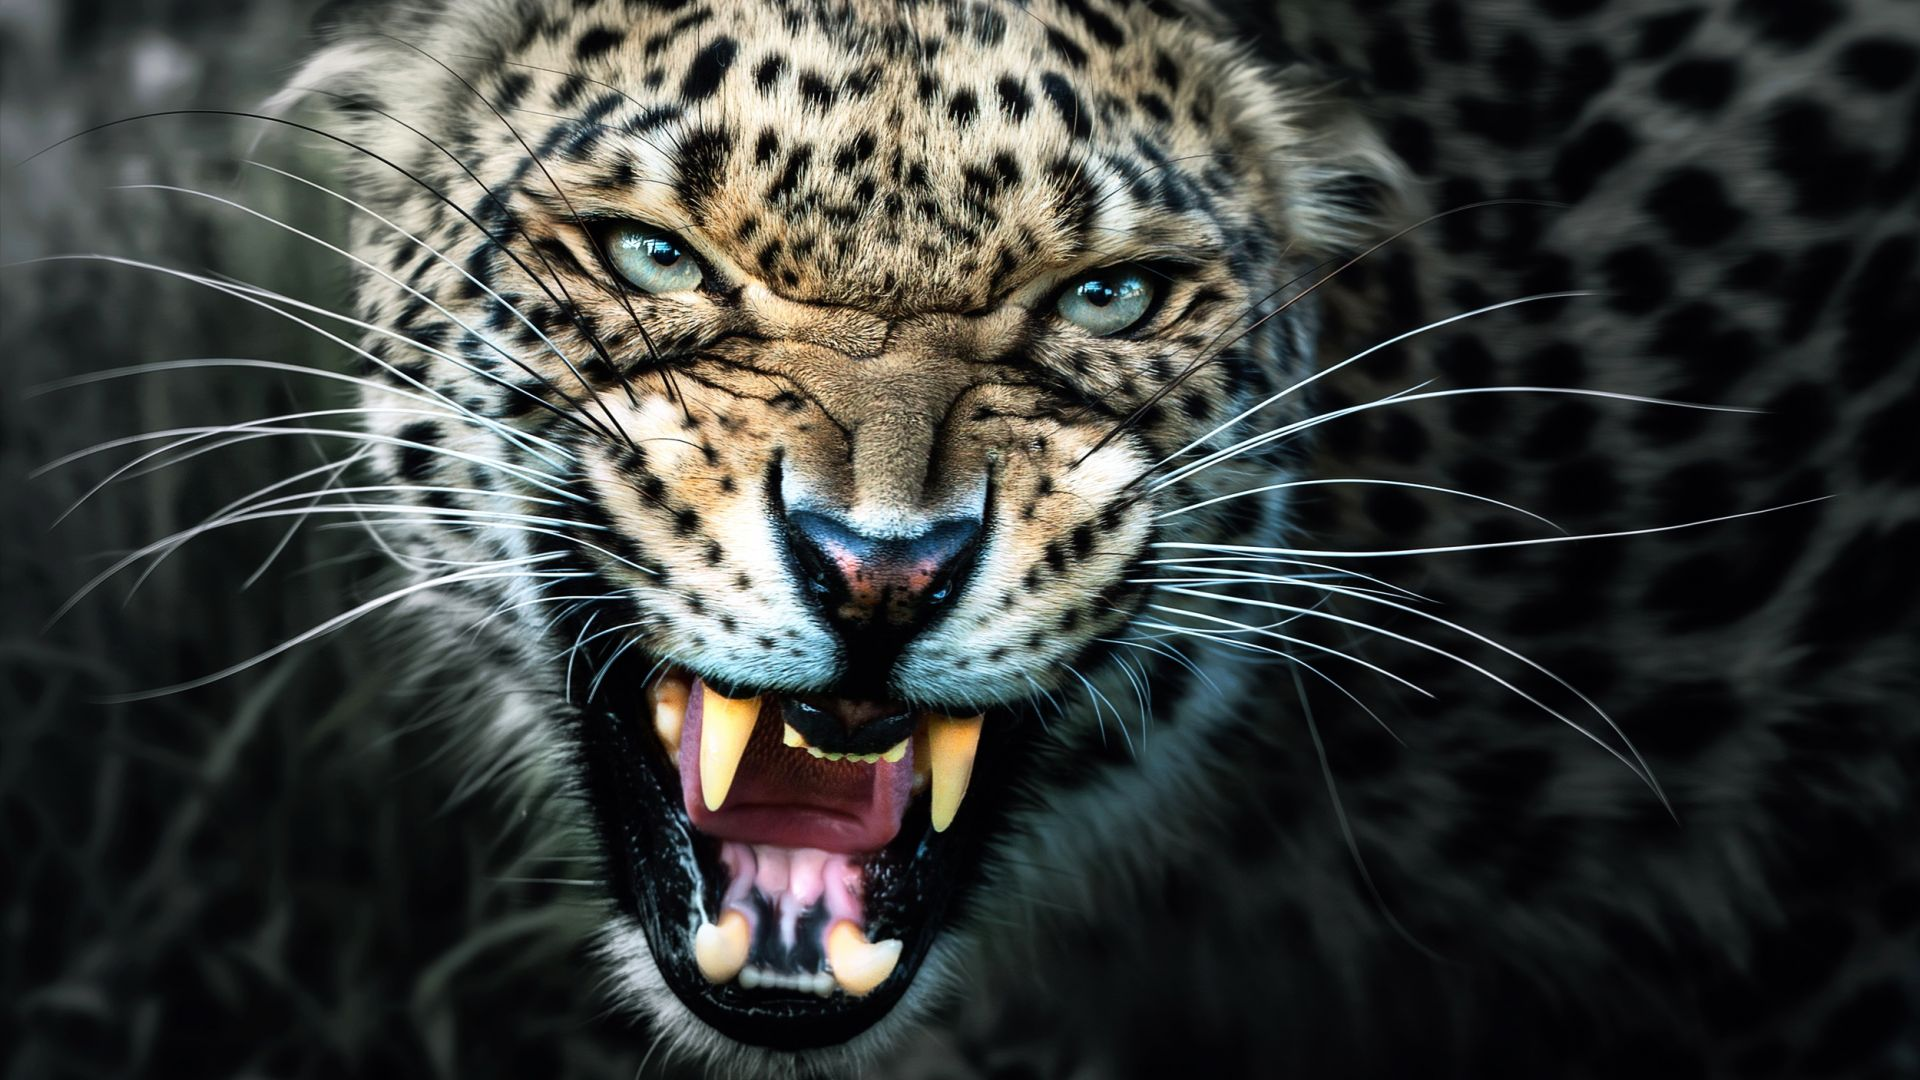 Wallpaper Angry leopard muzzle, wild animal